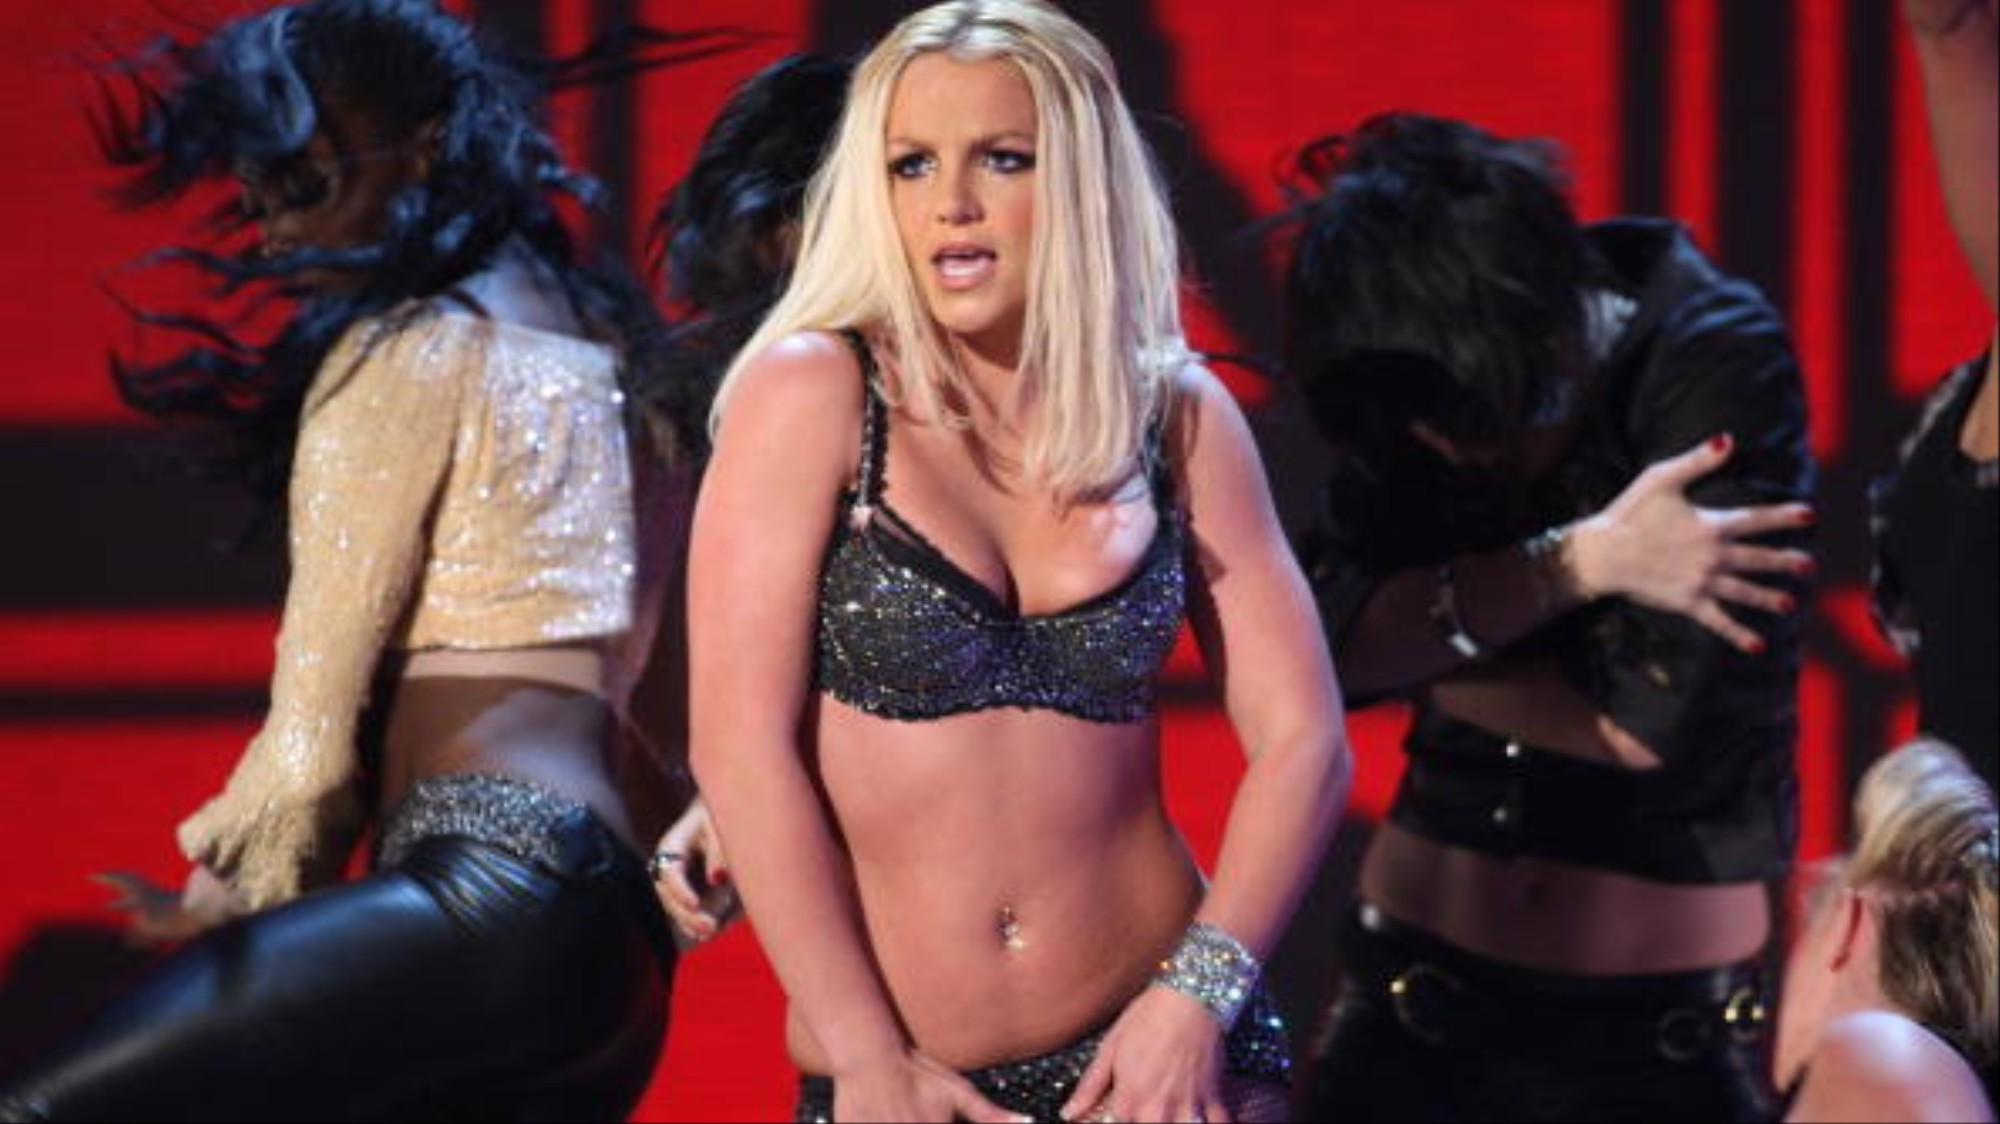 Britney Spears's Backup Dancer Shares What Happened at Her